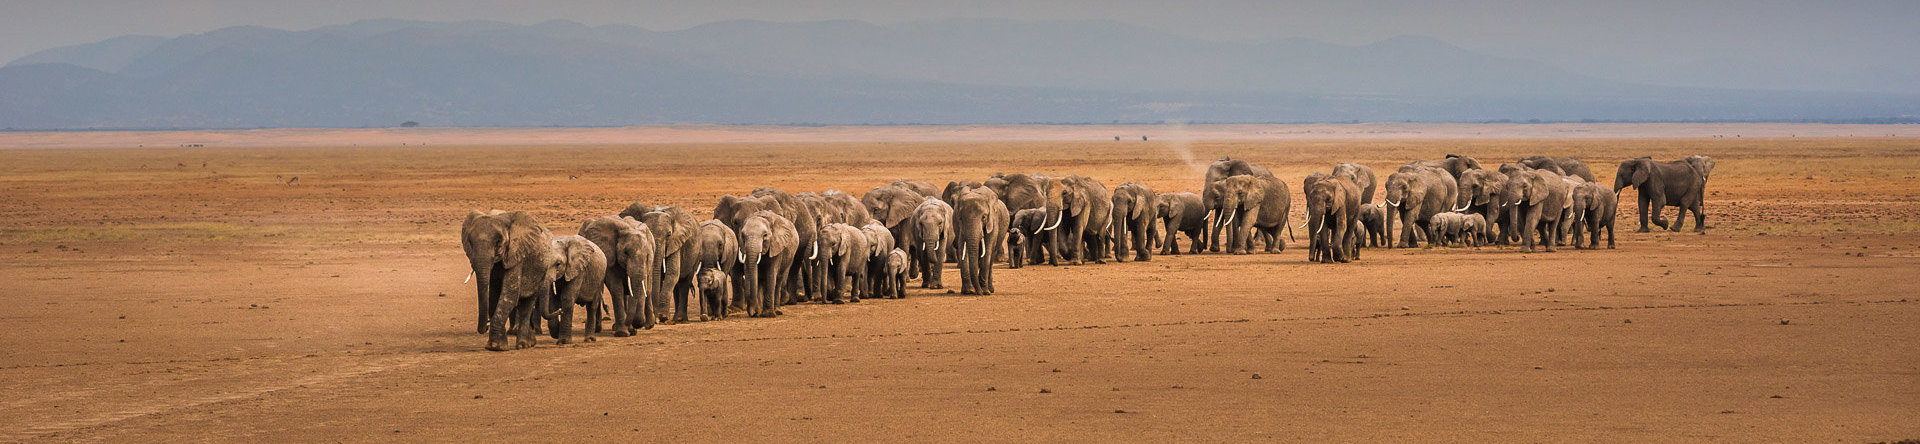 Africa_photo-safaris_elephants_Amboseli